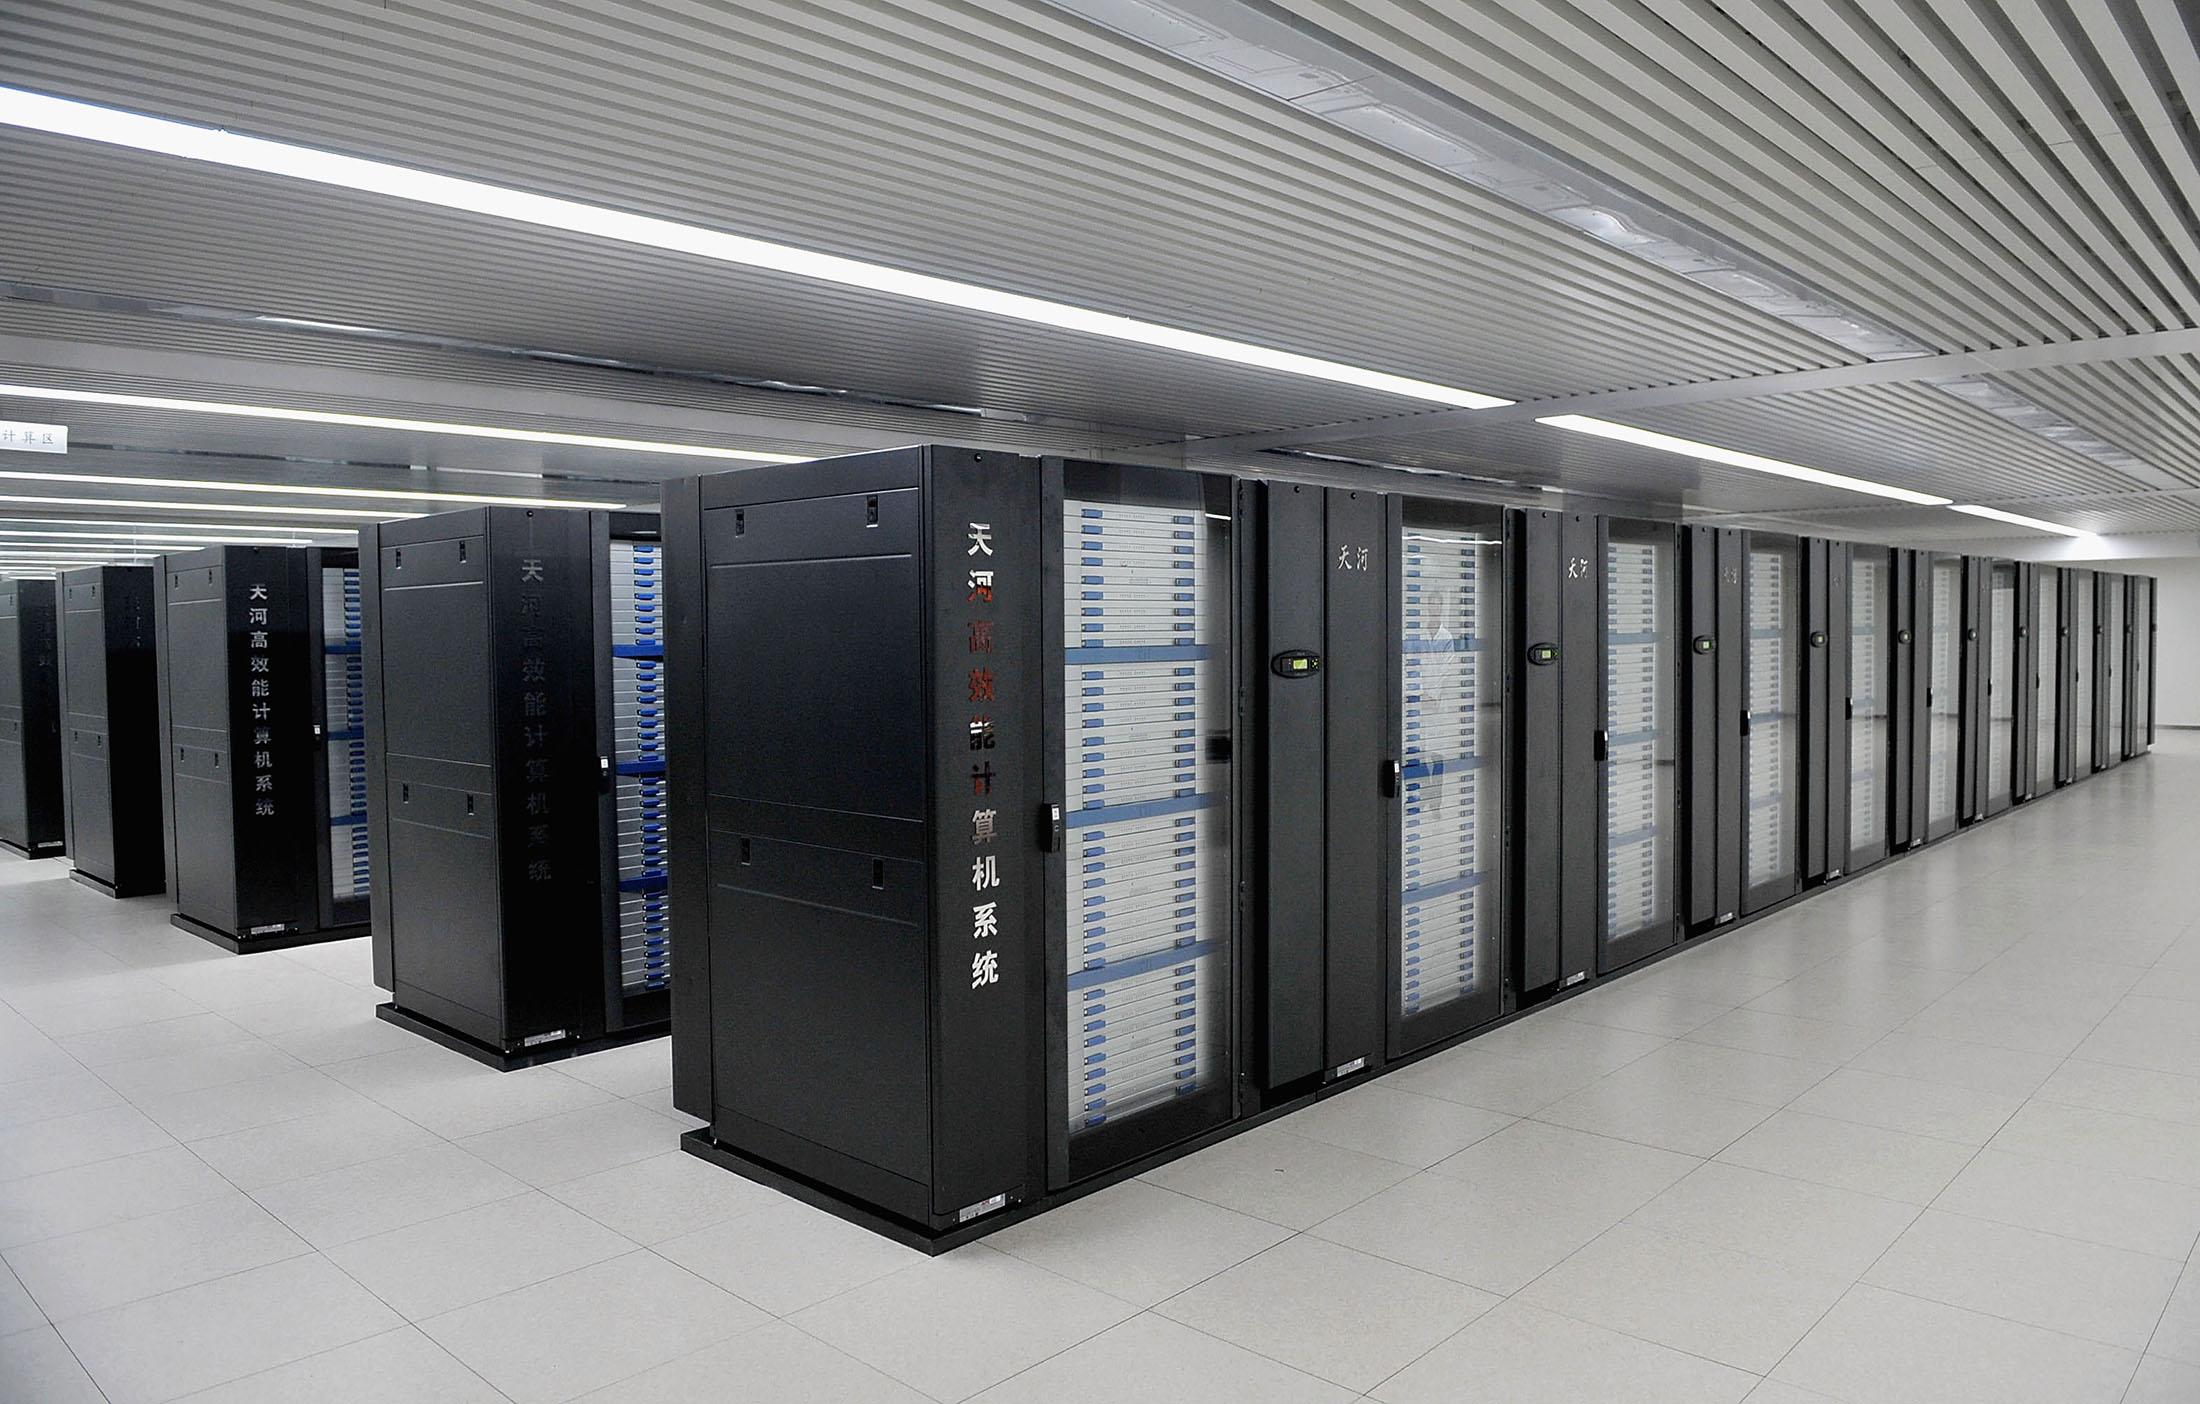 World's Fastest Supercomputer Now Has Chinese Chip Technology - Bloomberg